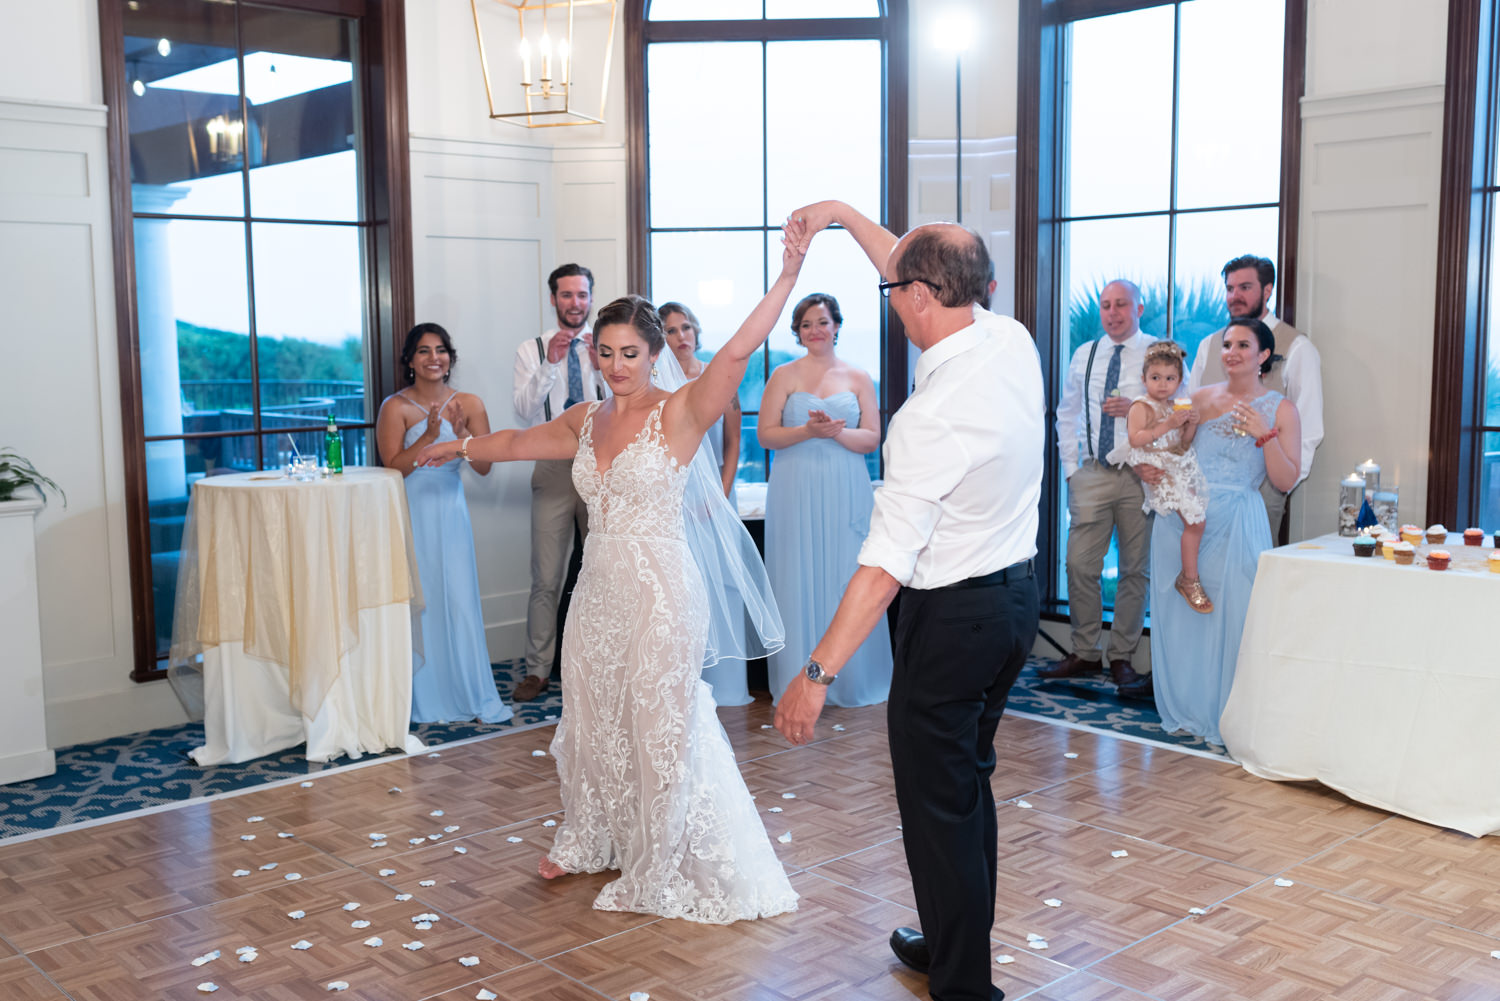 Choreographed first dance with bride and father - Grande Dunes Ocean Club - Myrtle Beach